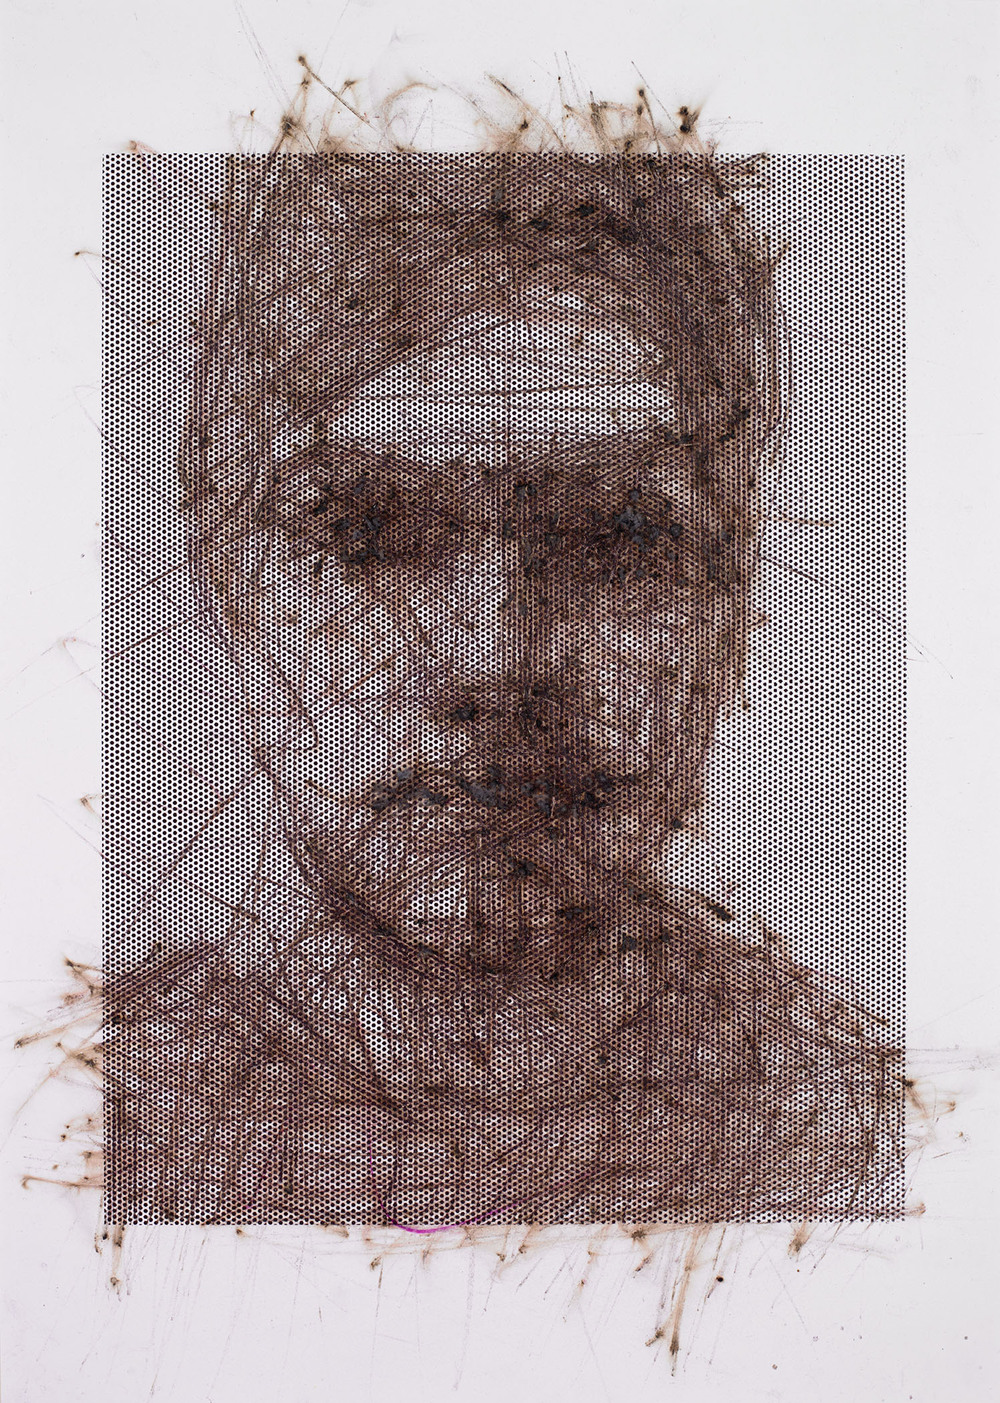 "Self-portrait, 2014, 15""x20"", Match-strikes on bristol paper with screen-print ink and powdered glass"